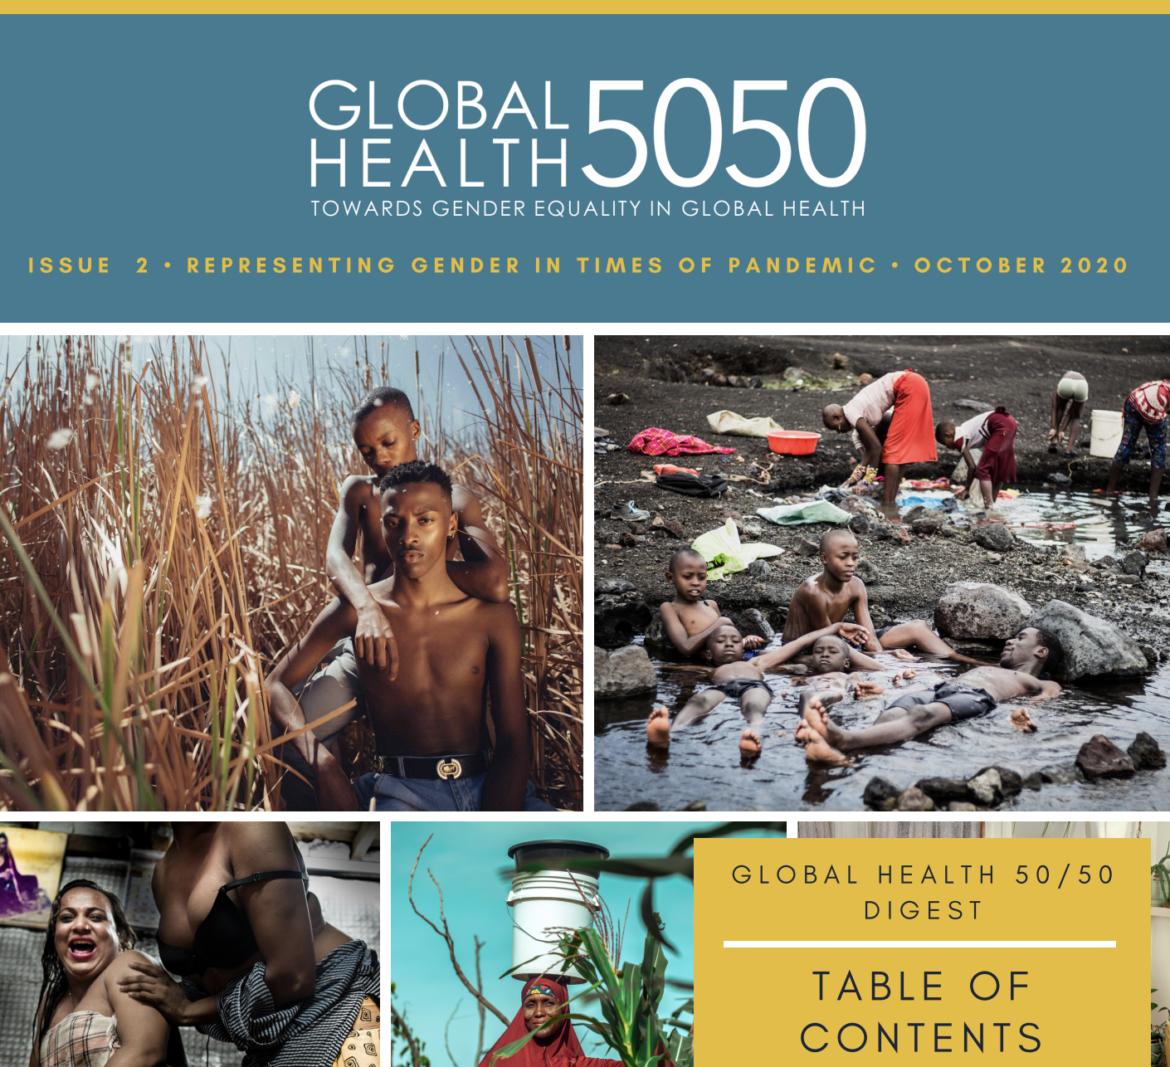 Issue 2 • Representing Gender in Times of Pandemic • GH5050 Digest